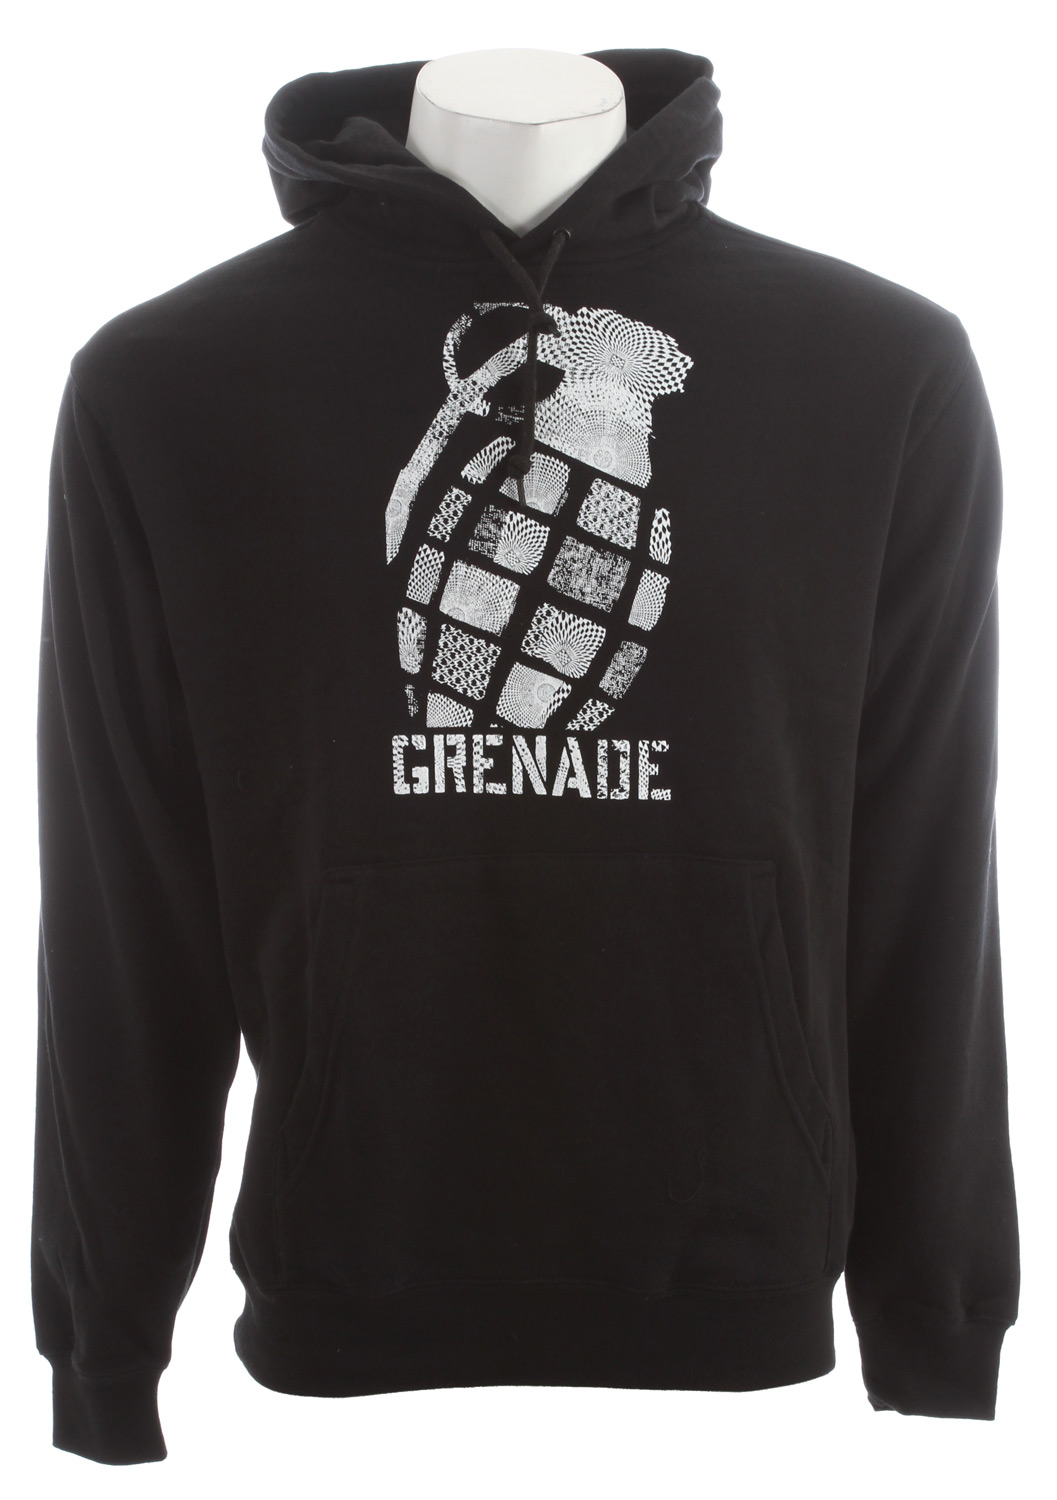 The Grenade Geo Tilt Hoodie is a stylish, smart and strong piece of clothing which will cause a scene wherever you go. Made with blended fleece, and packed with middleweight insulation for a range of environments, the Grenade Geo Tilt Hoodie can keep you warm and fashionable wherever you go. With a hood and pullover design, the hoodie is easy to put on and off and its regular fit should adapt to any consumer looking for an aggressive yet intriguing new look. While not resistant to water, this hoodie is still desirable to all consumers.Key Features of the Grenade Geo Tilt Hoodie:  80/20 Blended fleece  Screen print graphic  Kangaroo pocket  Classic pull over fit - $34.95